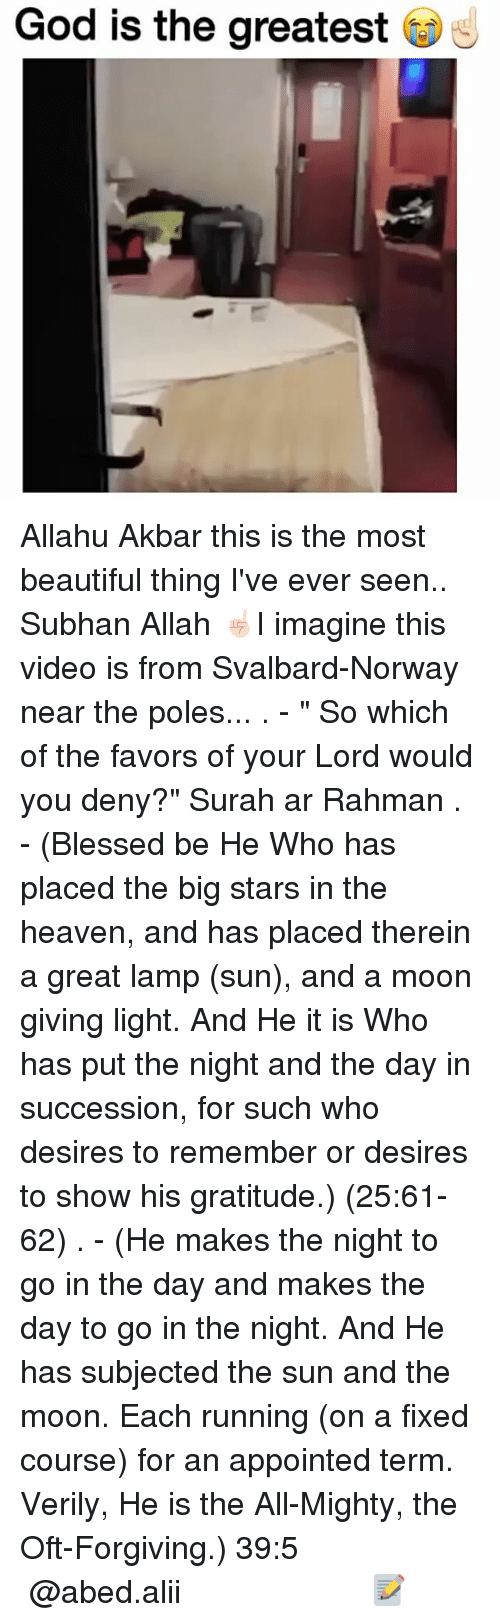 """Allahu Akbar, Beautiful, and Blessed: God is the greatest Allahu Akbar this is the most beautiful thing I've ever seen.. Subhan Allah ☝🏻I imagine this video is from Svalbard-Norway near the poles... . - """" So which of the favors of your Lord would you deny?"""" Surah ar Rahman . - (Blessed be He Who has placed the big stars in the heaven, and has placed therein a great lamp (sun), and a moon giving light. And He it is Who has put the night and the day in succession, for such who desires to remember or desires to show his gratitude.) (25:61-62) . - (He makes the night to go in the day and makes the day to go in the night. And He has subjected the sun and the moon. Each running (on a fixed course) for an appointed term. Verily, He is the All-Mighty, the Oft-Forgiving.) ﴿39:5﴾ ▃▃▃▃▃▃▃▃▃▃▃▃▃▃▃▃▃▃▃▃ @abed.alii 📝"""